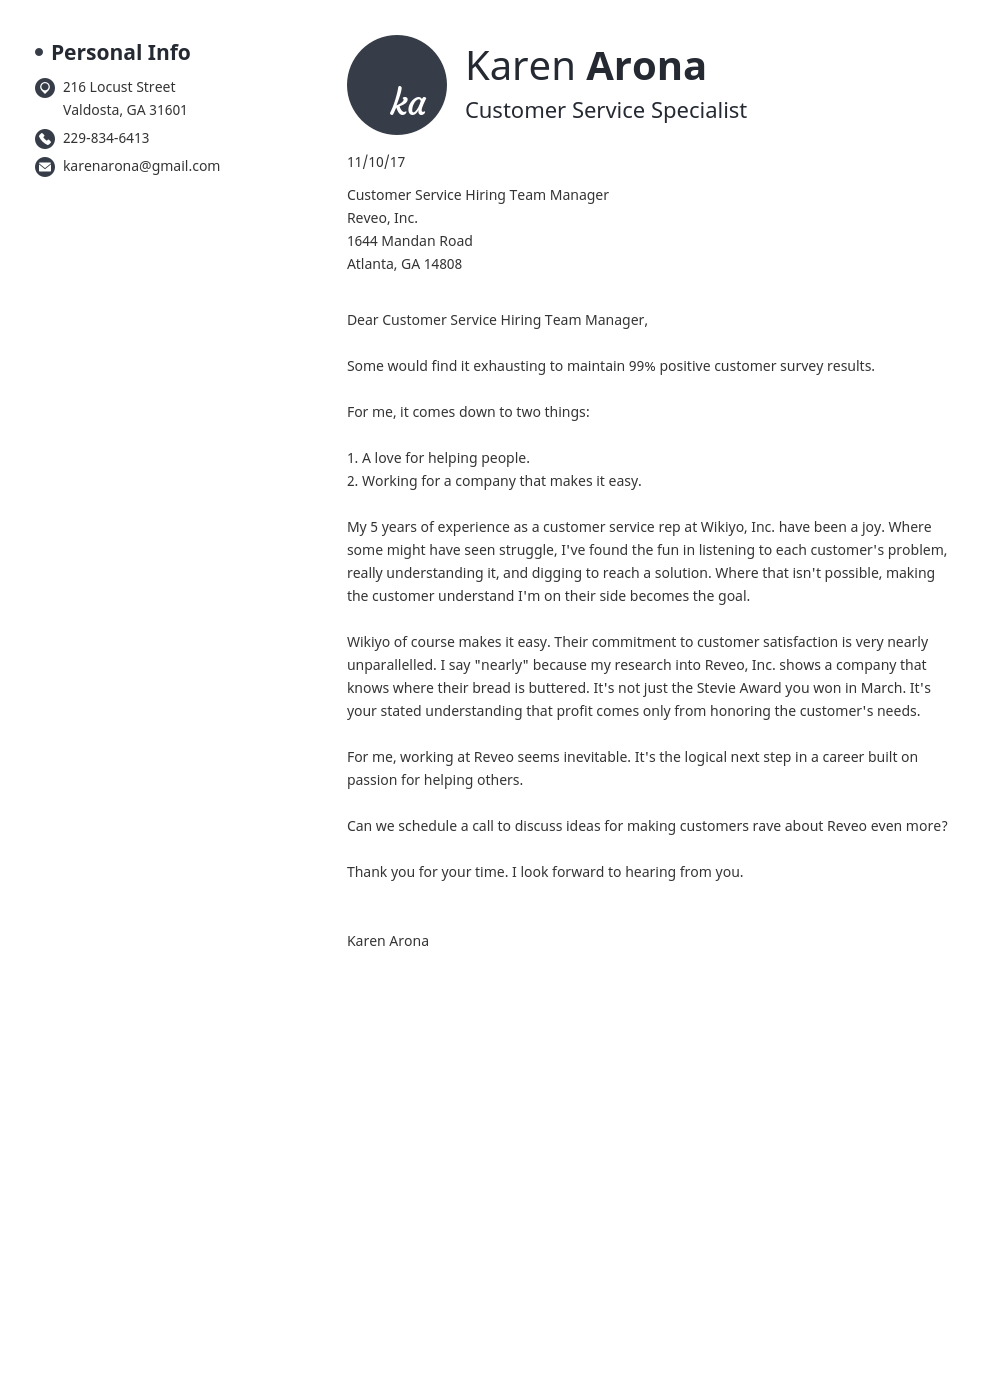 How To Address A Cover Letter And Who